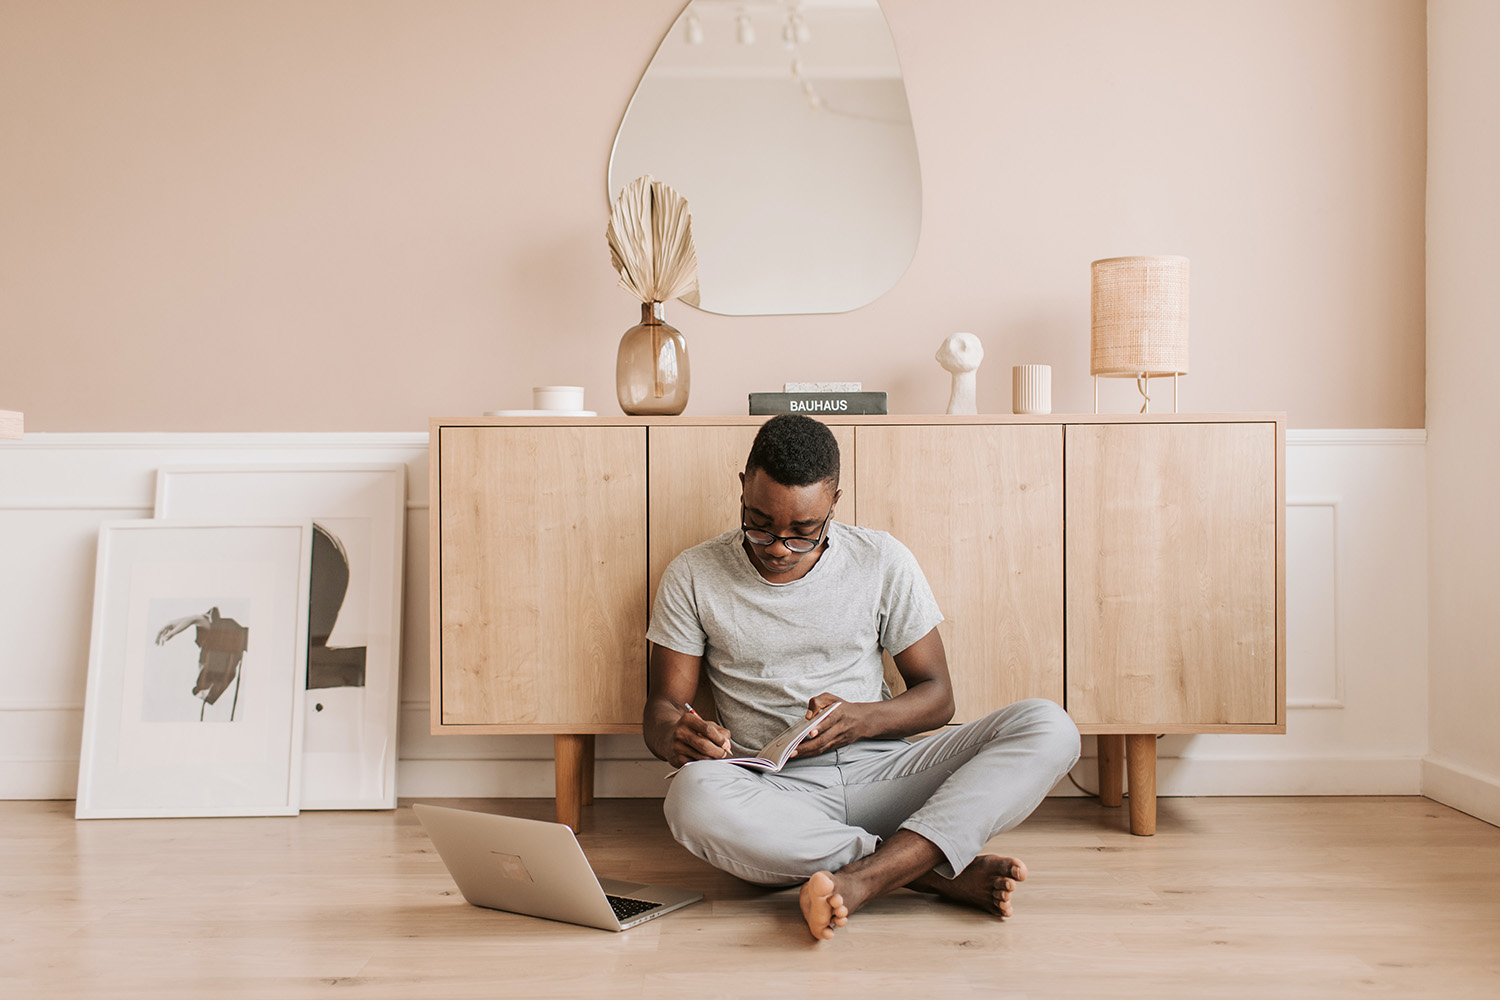 African History Project - Black Man with Computer on Floor copy